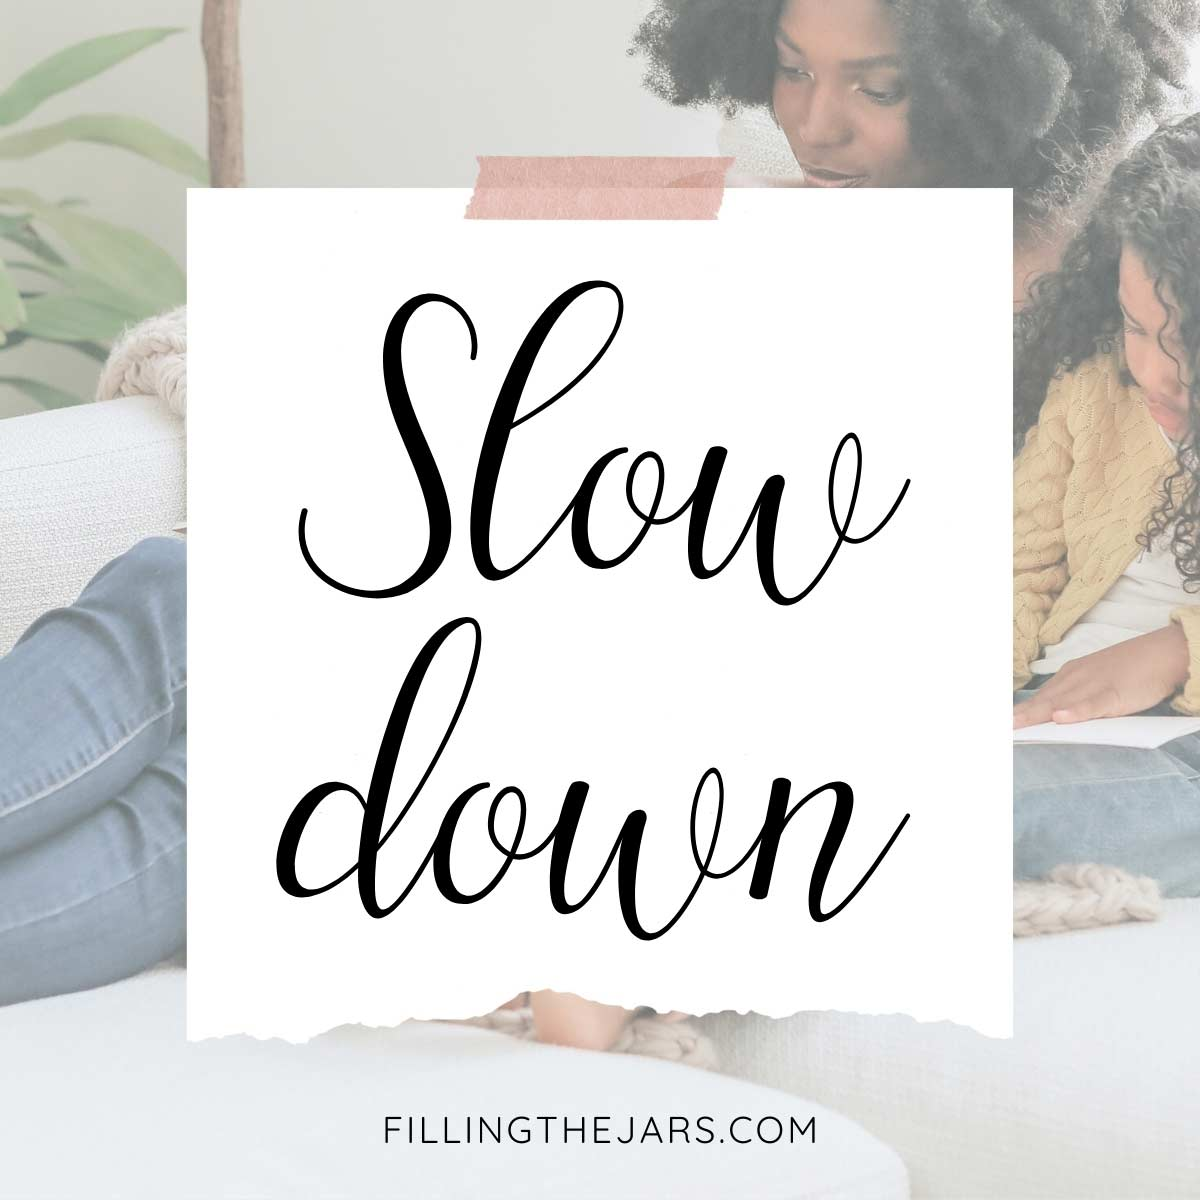 Script text slow down on white background over image of mother and daughter lounging on white couch and writing in journals.